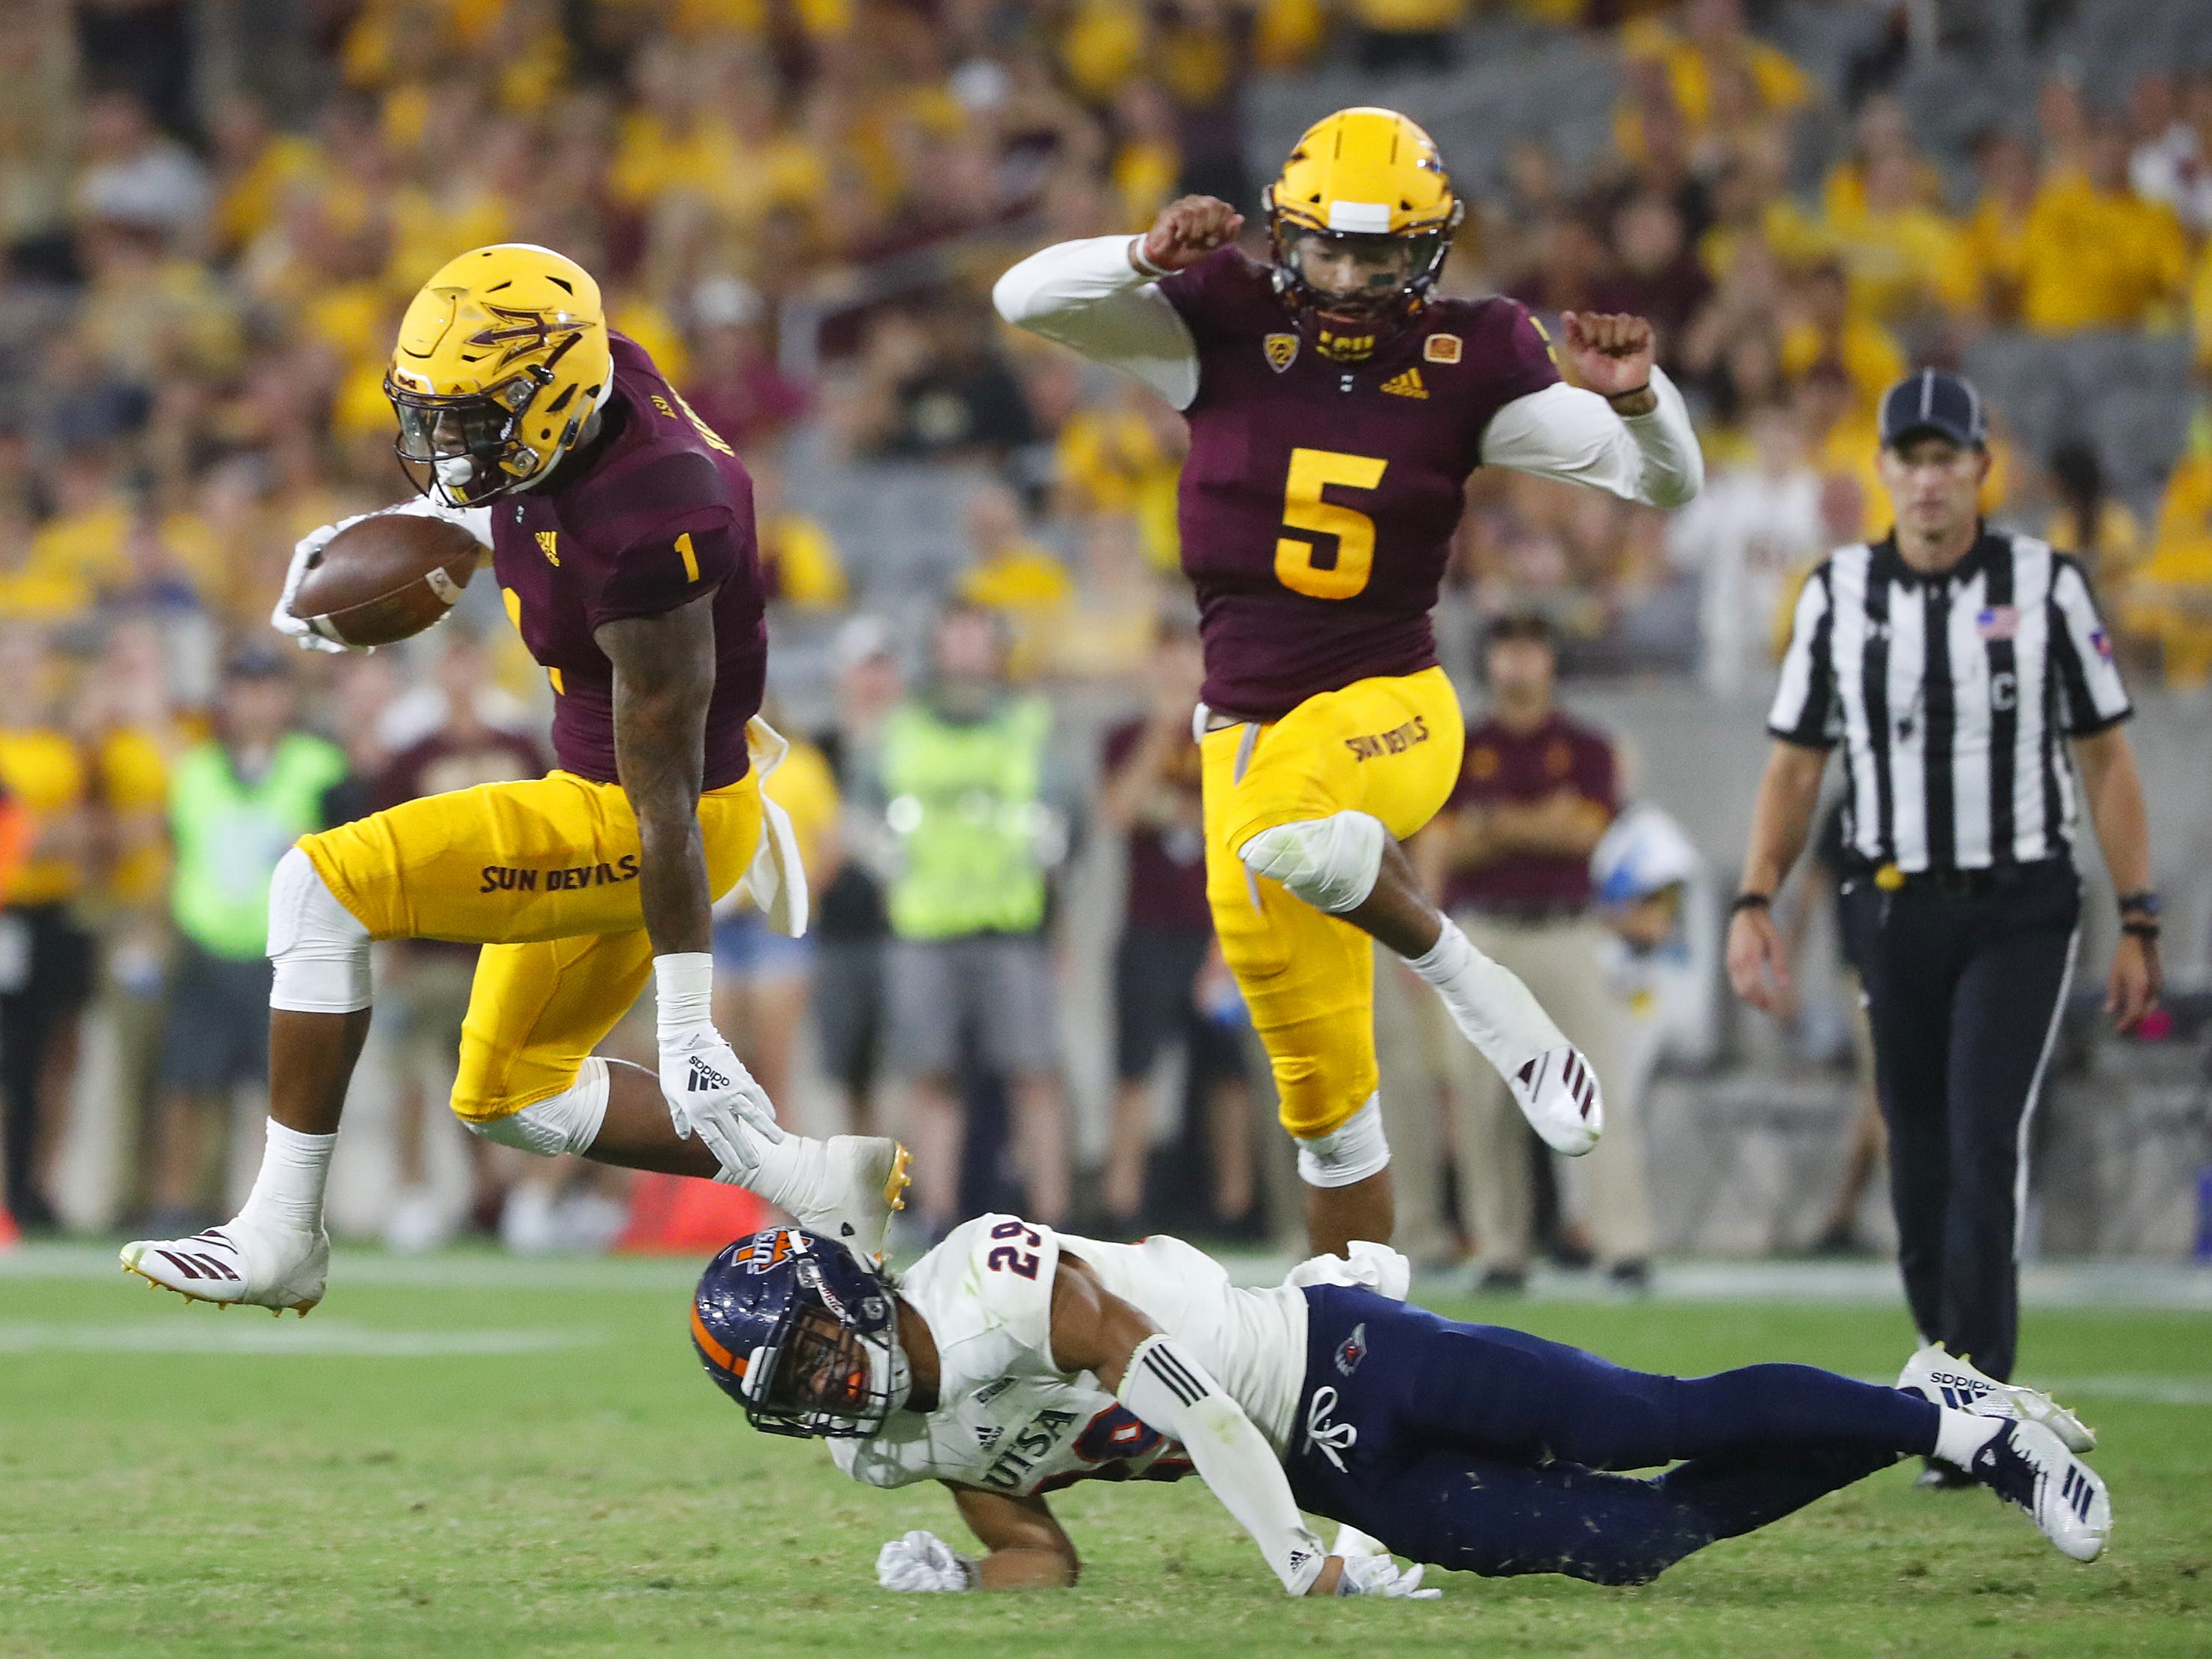 Arizona State Sun Devils wide receiver N'Keal Harry (1) jumps over a tackle from UTSA Roadrunners cornerback Clayton Johnson (29) on his way to a touchdown during the second half at Sun Devil Stadium in Tempe, Ariz. on Sept. 1, 2018.